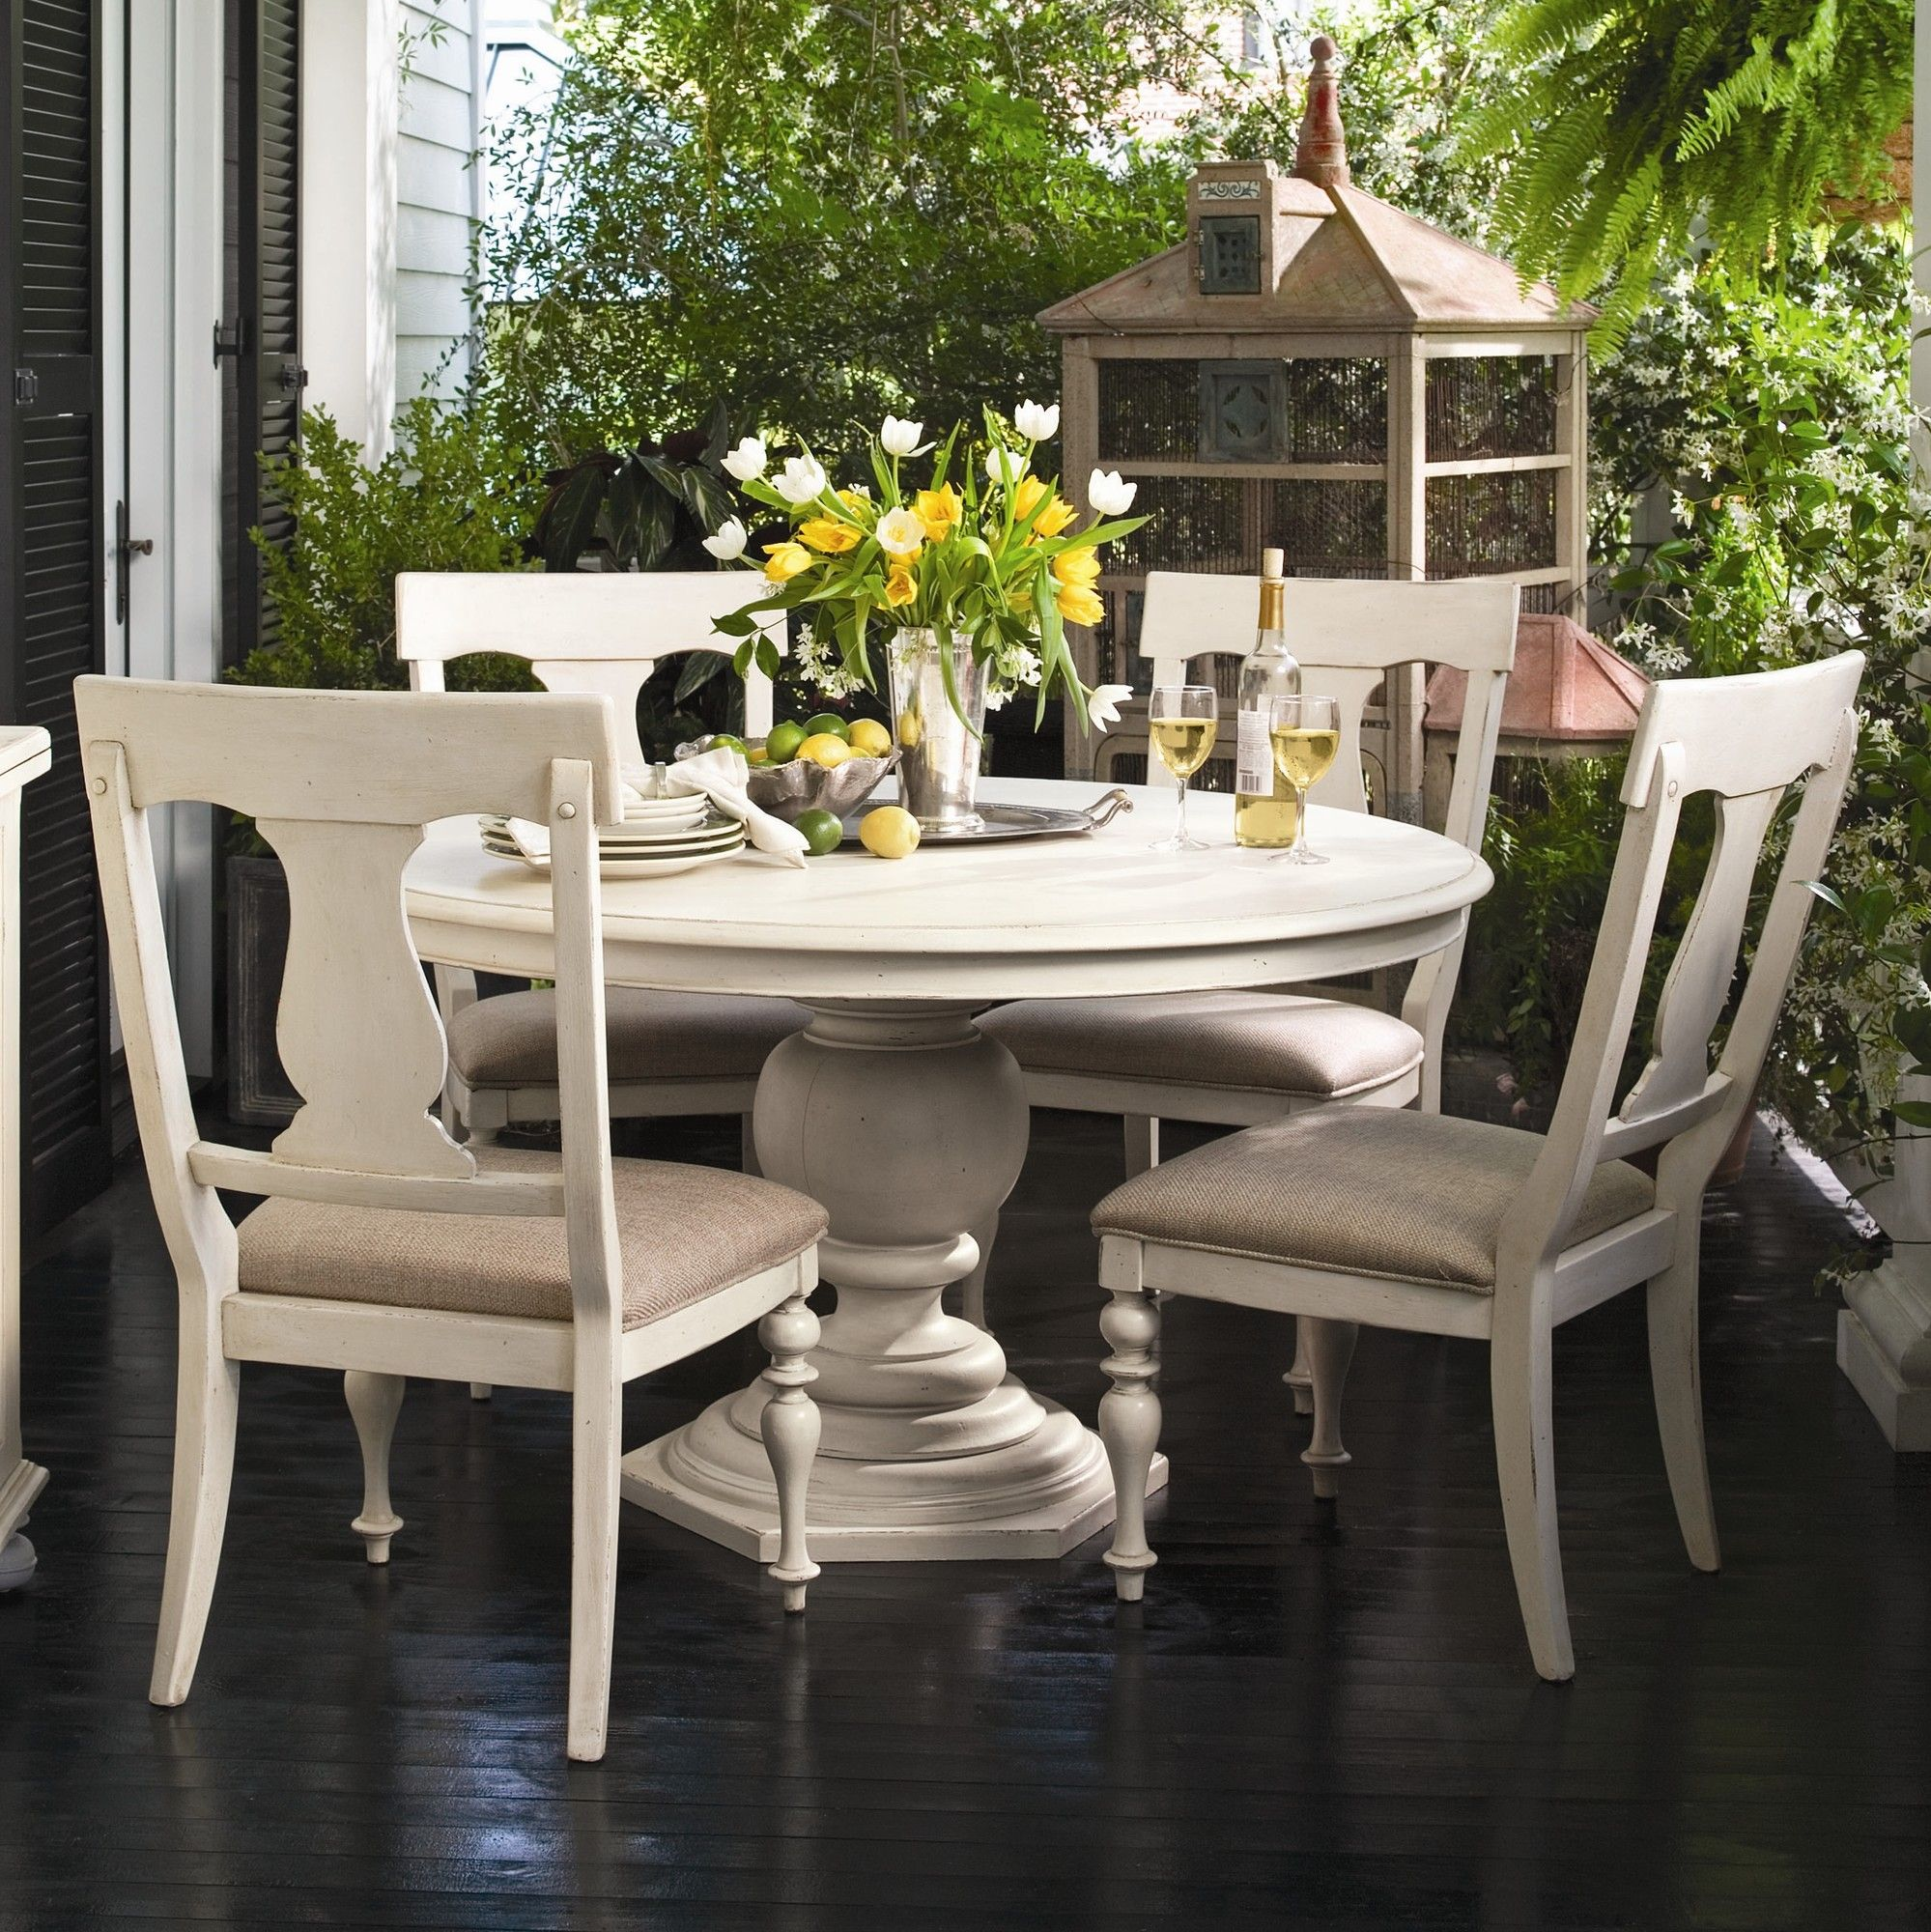 Wayfair line Home Store for Furniture Decor Outdoors